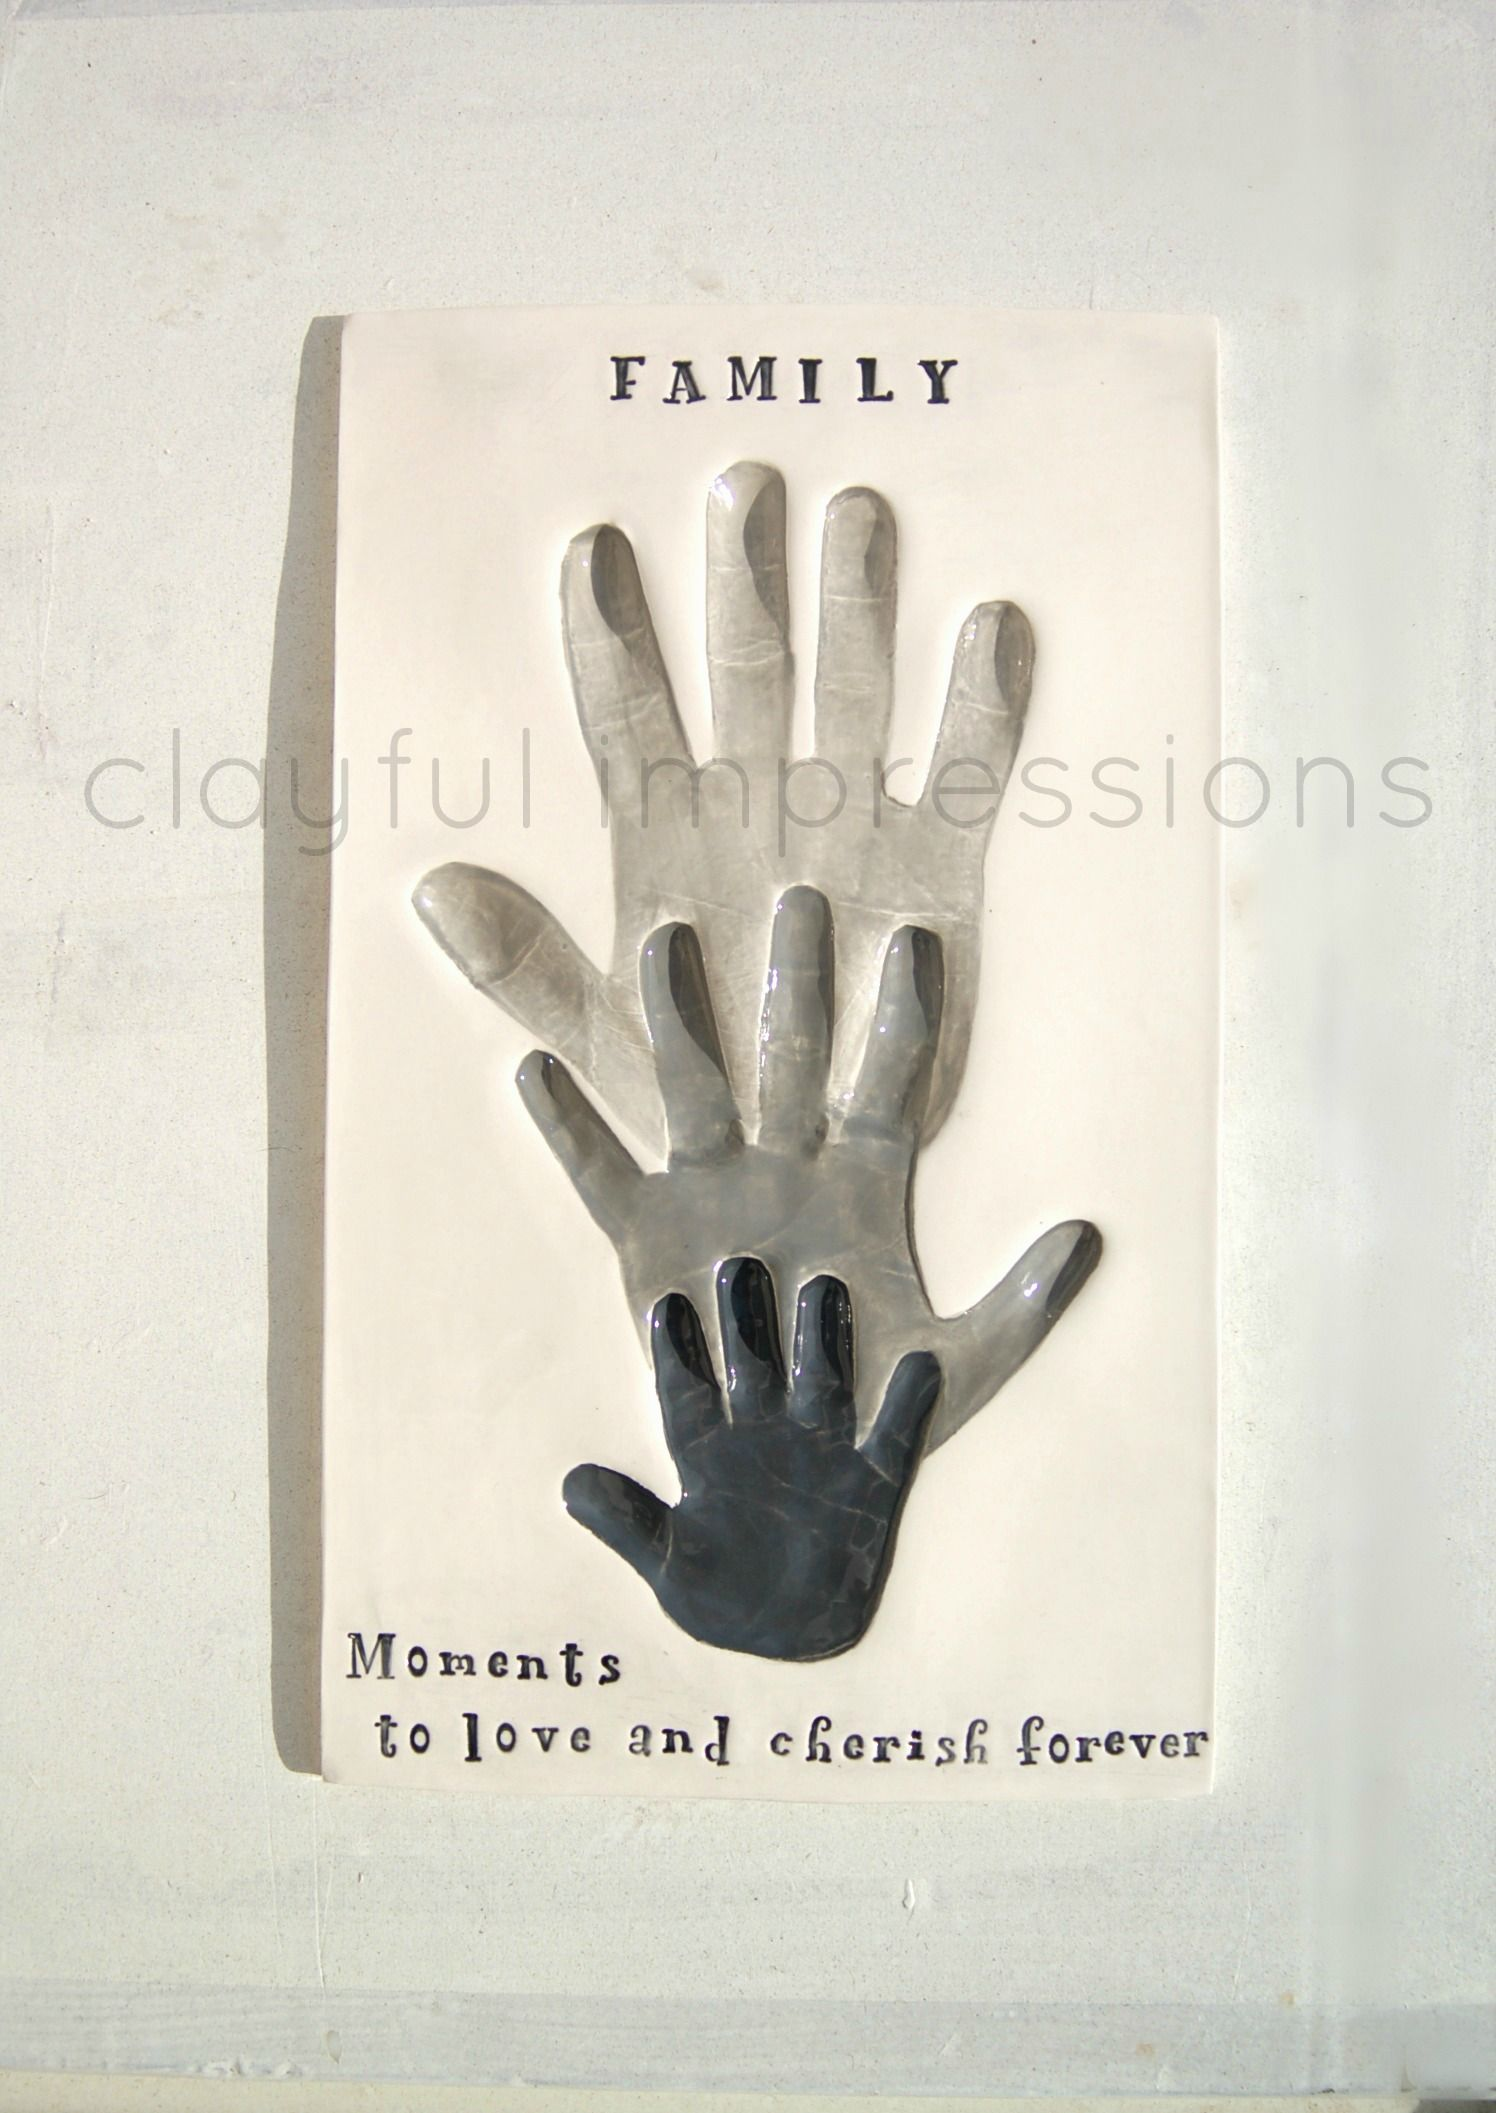 Celebrating Family and the memoires that come with it.  clayfulimpressions / www.etsy.com/shop/Dprintsclayful